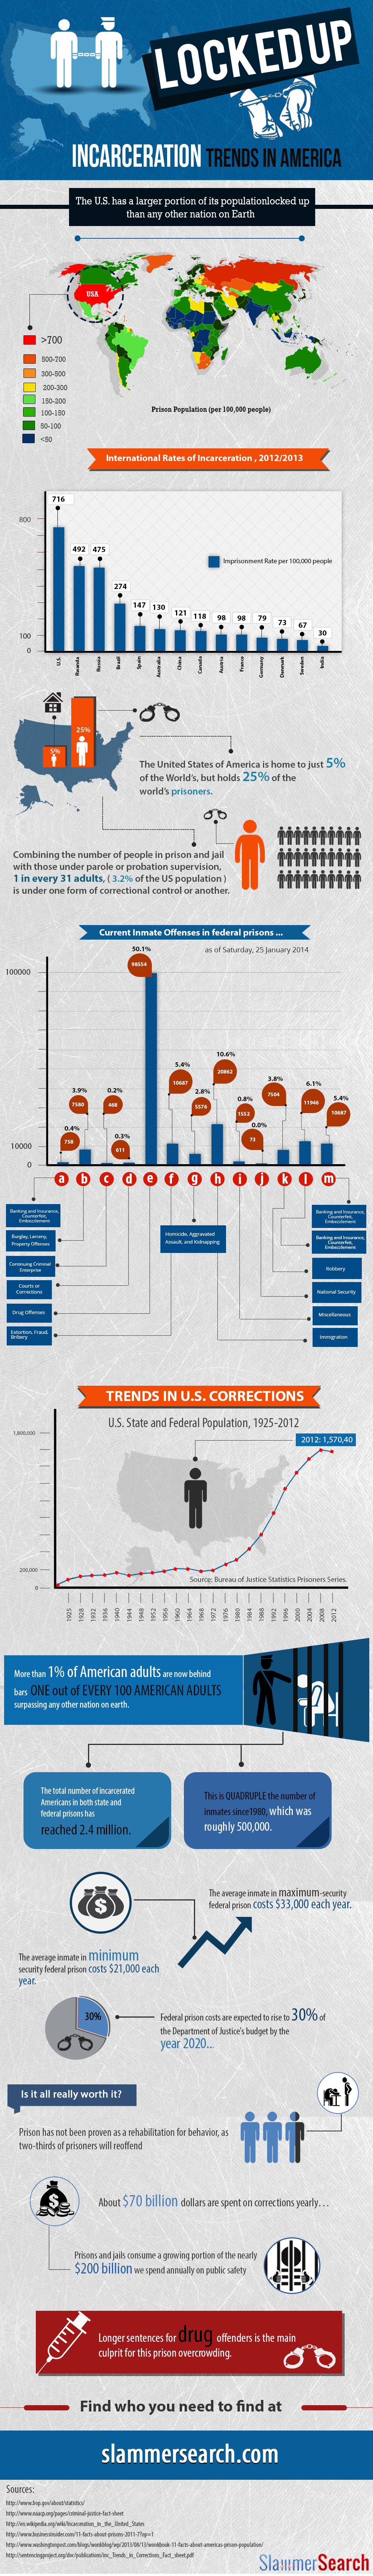 Locked Up: Incarceration Trends in America